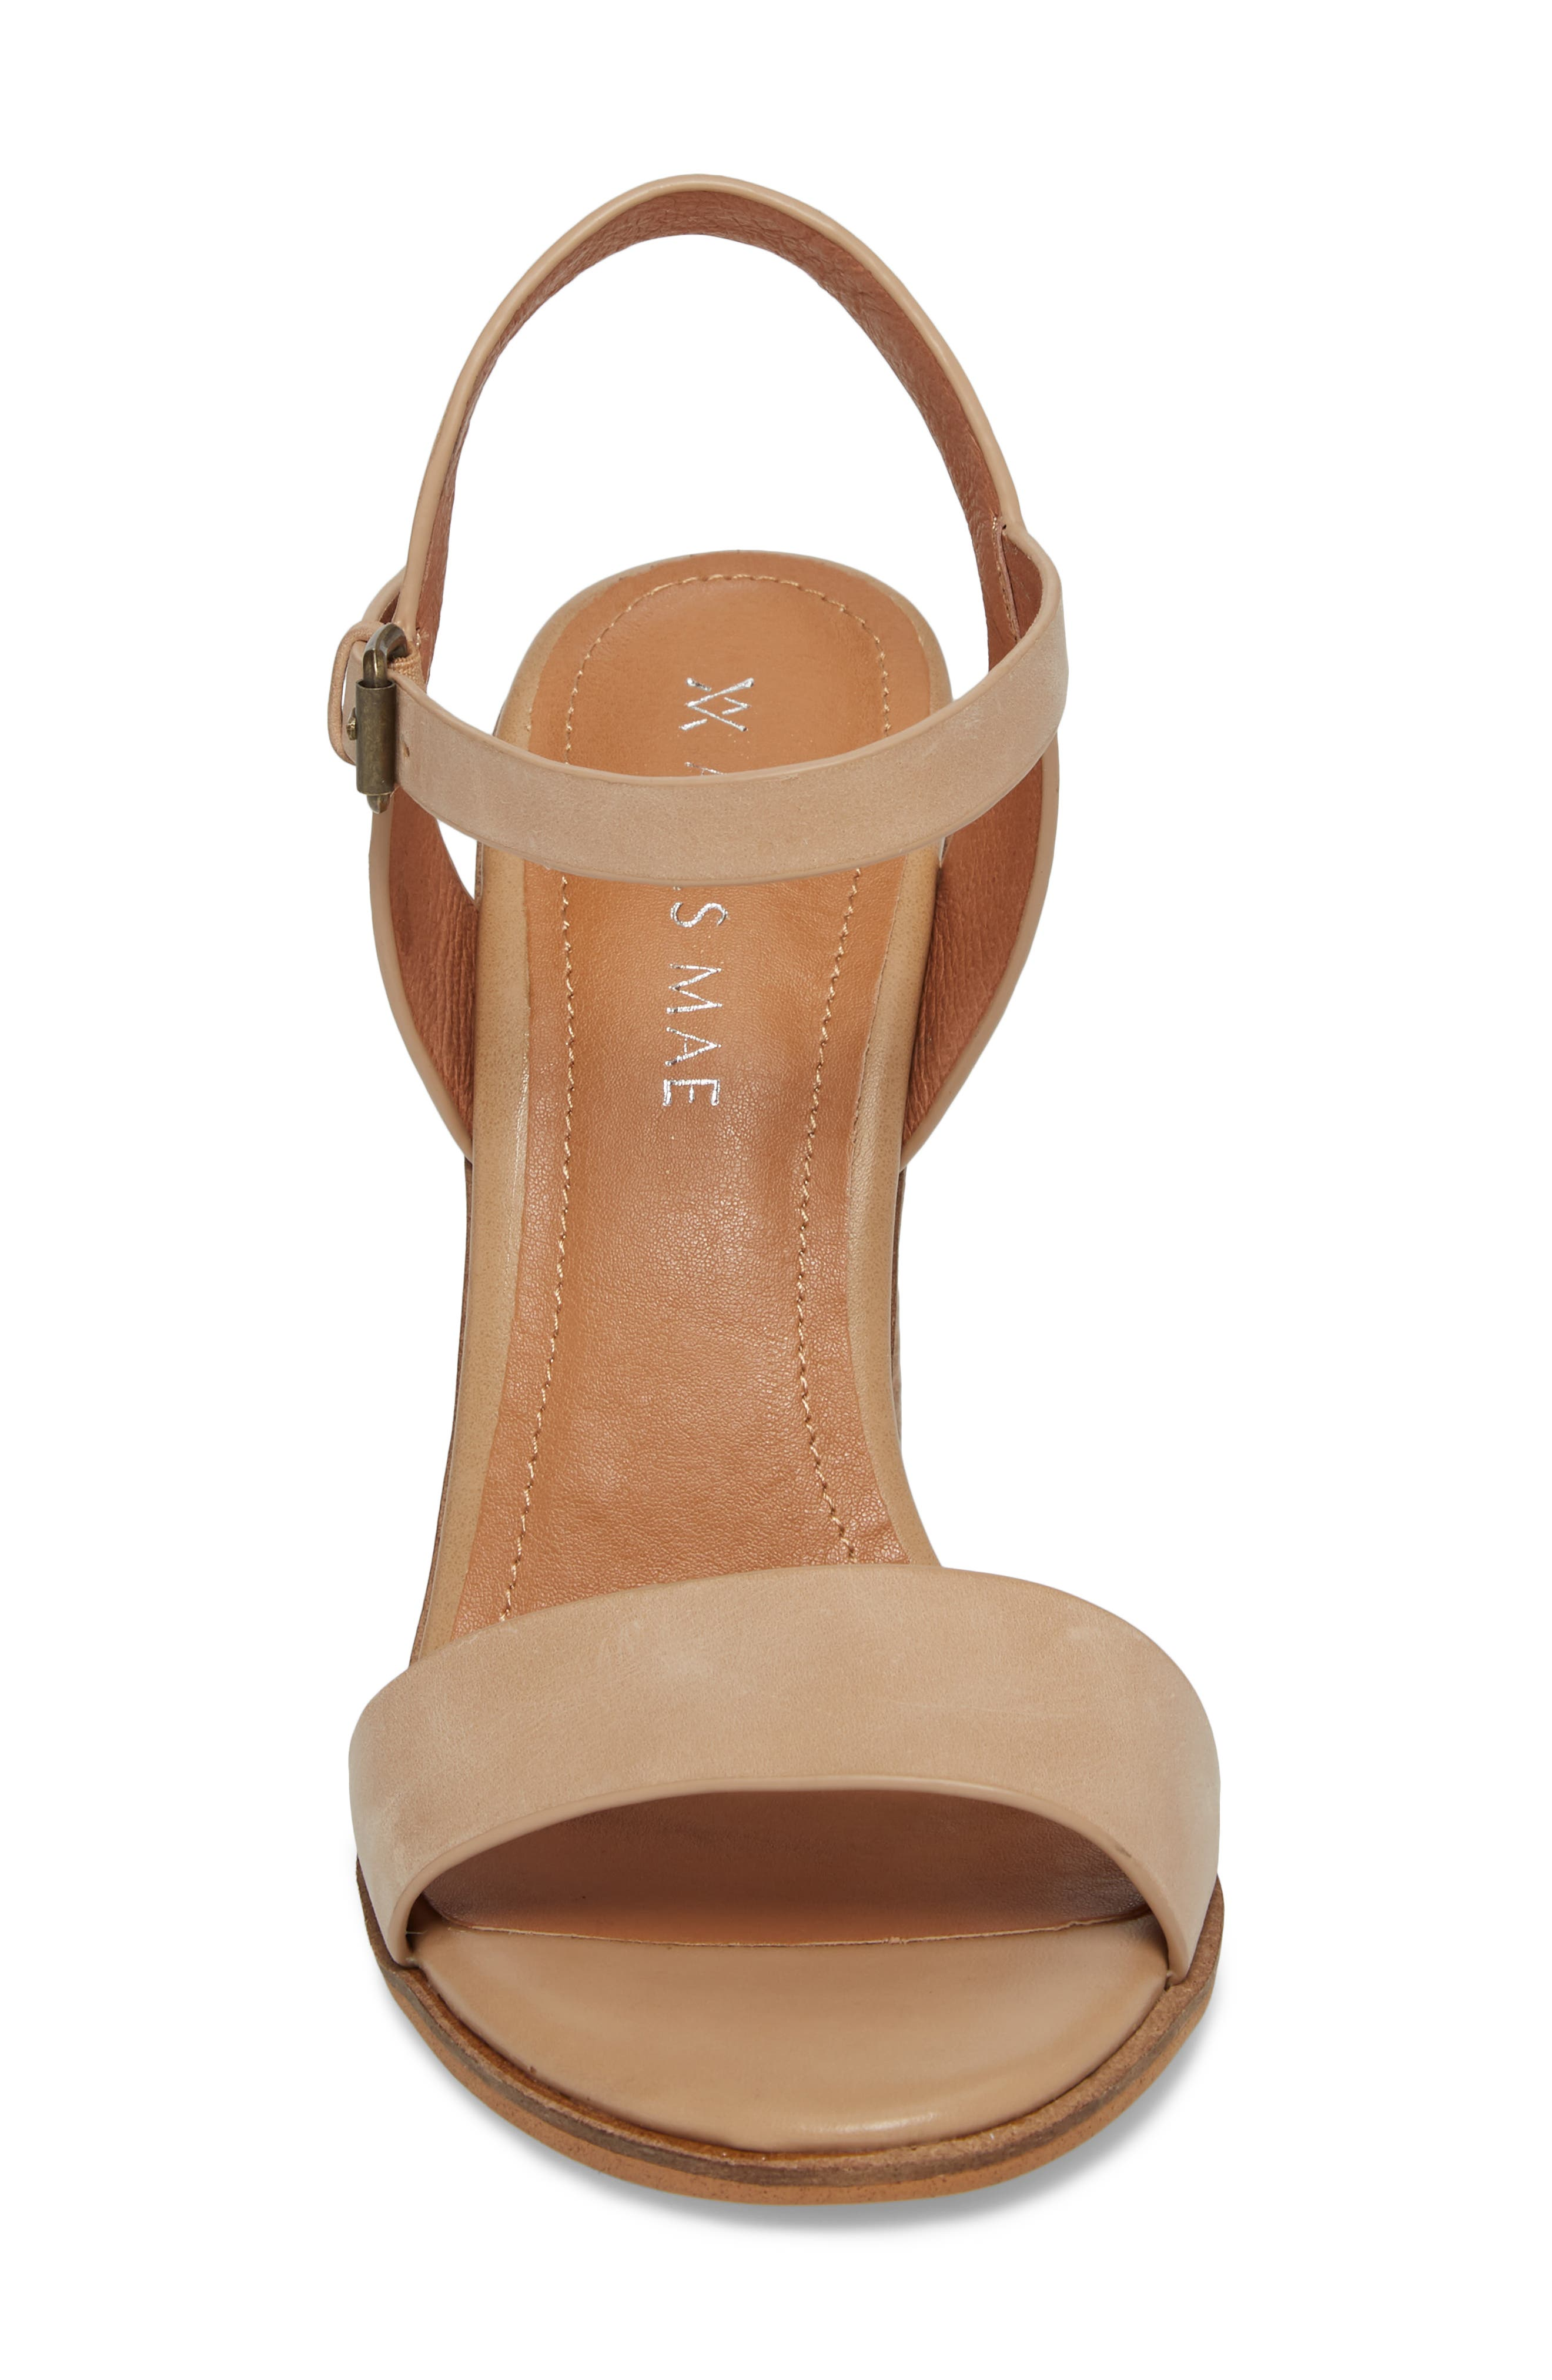 Abagail Sandal,                             Alternate thumbnail 4, color,                             NATURAL LEATHER